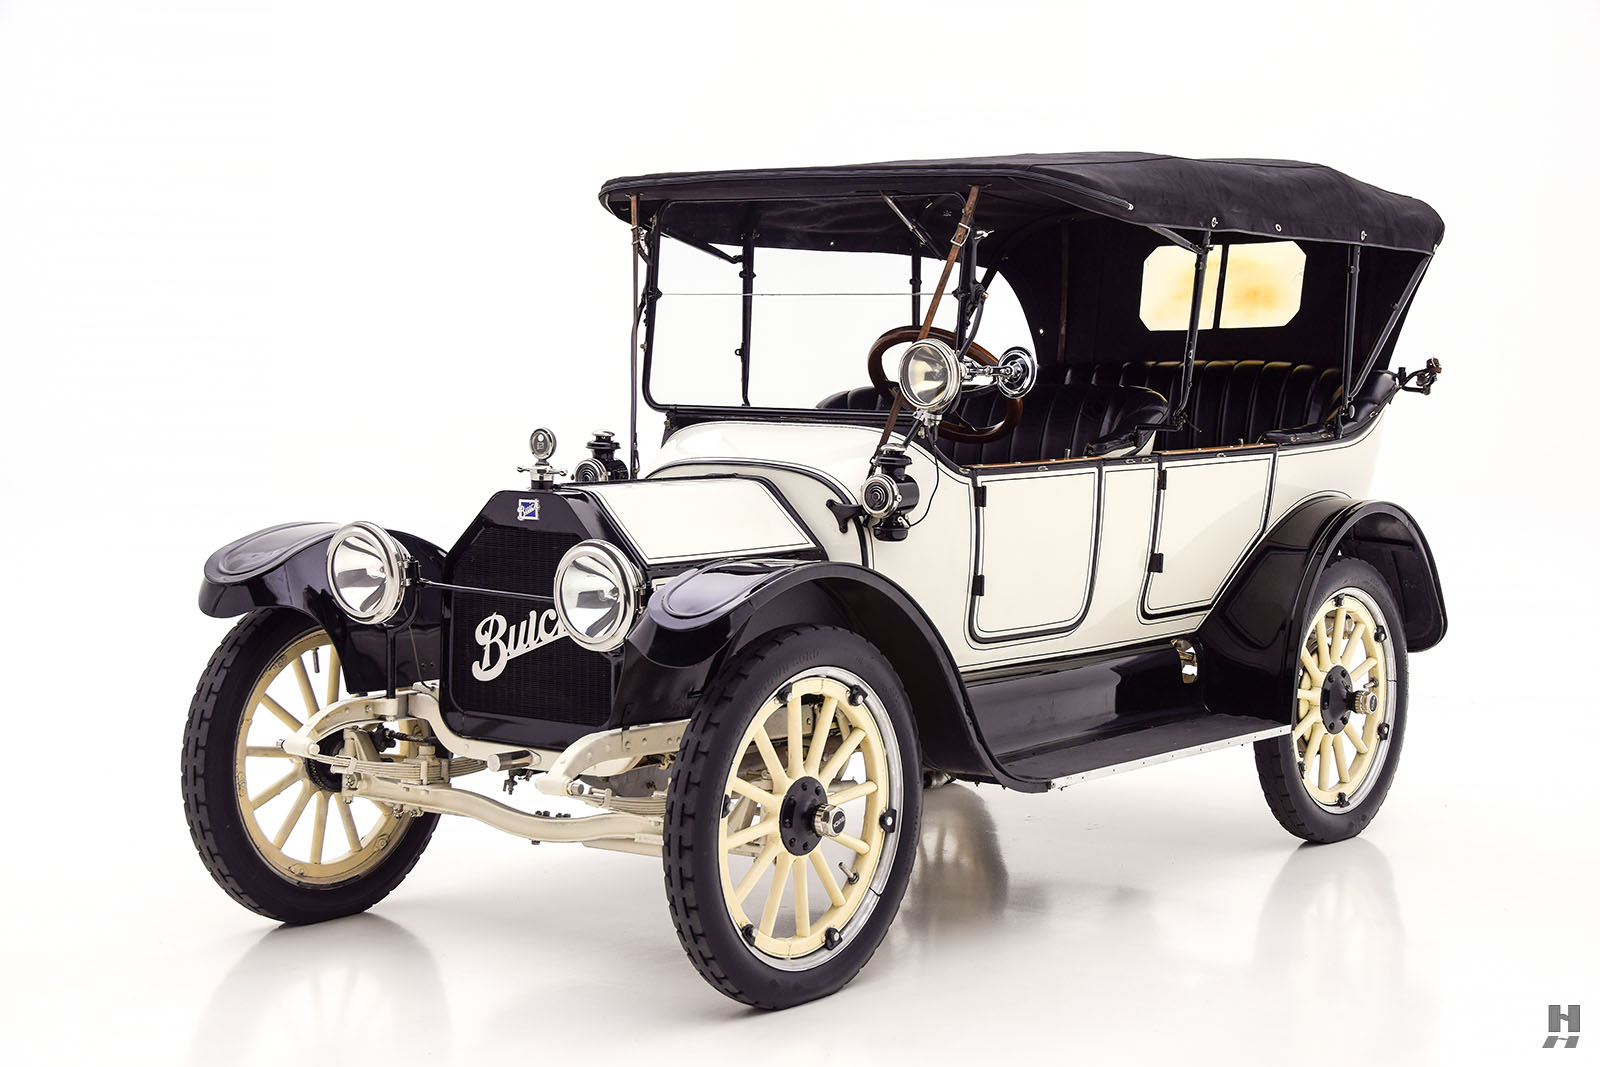 1914 Buick Model B25 Touring For Sale | Buy Classic Cars | Hyman LTD